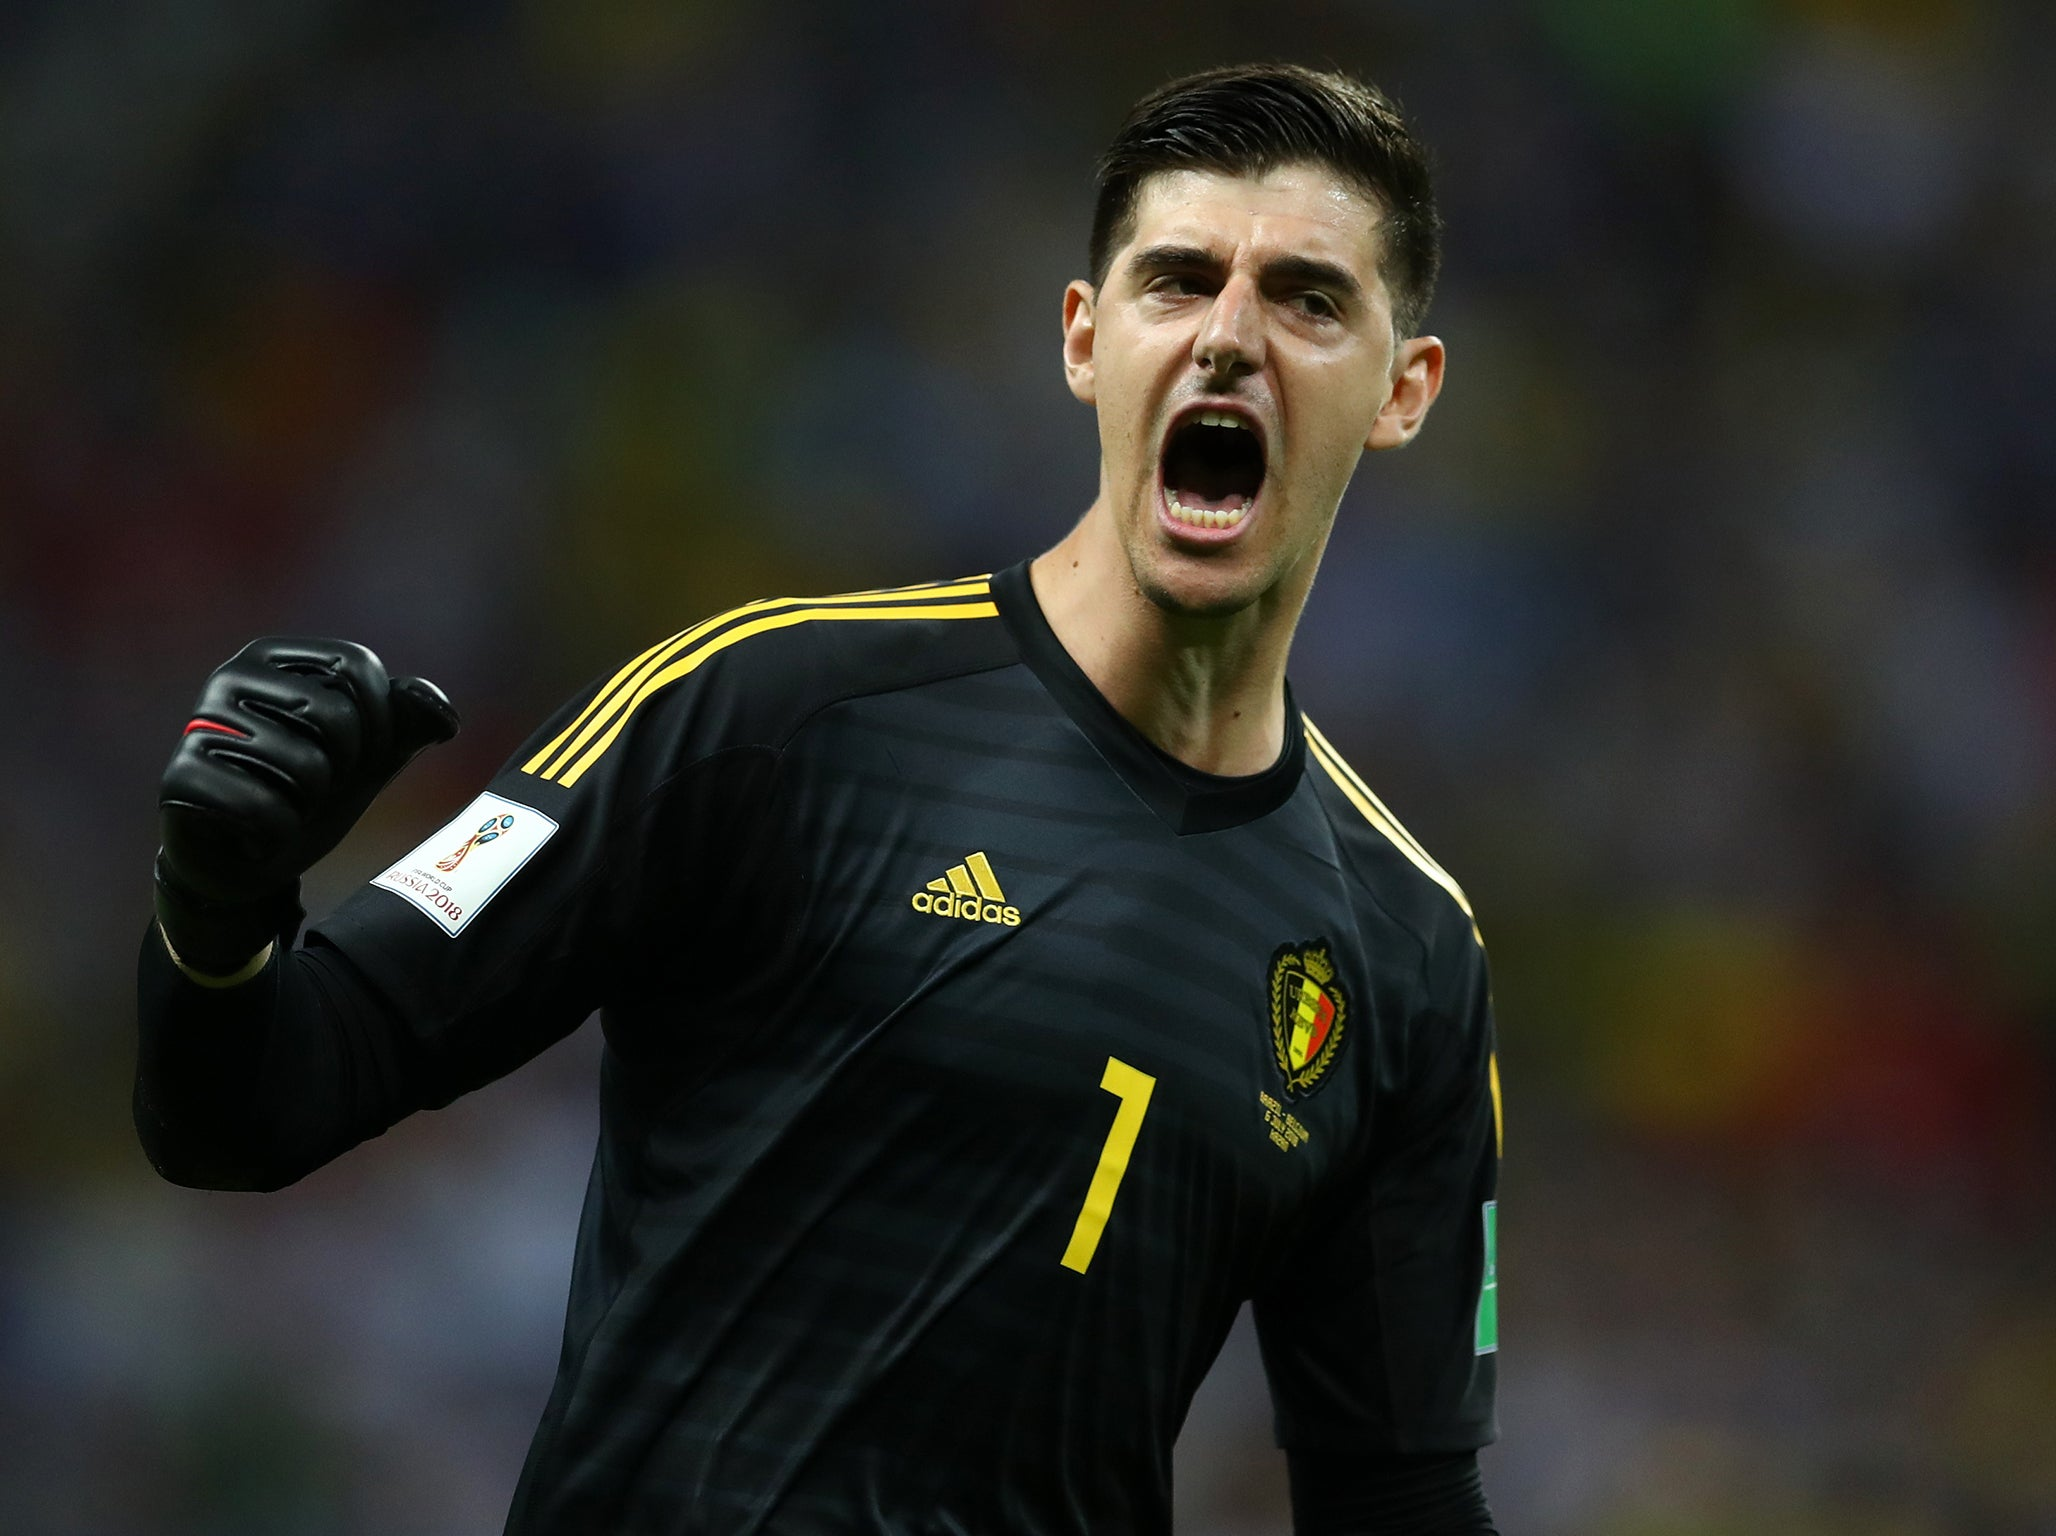 Belgium's Thibaut Courtois plays down row with World Cup rival Jordan Pickford: 'He is a great goalkeeper'